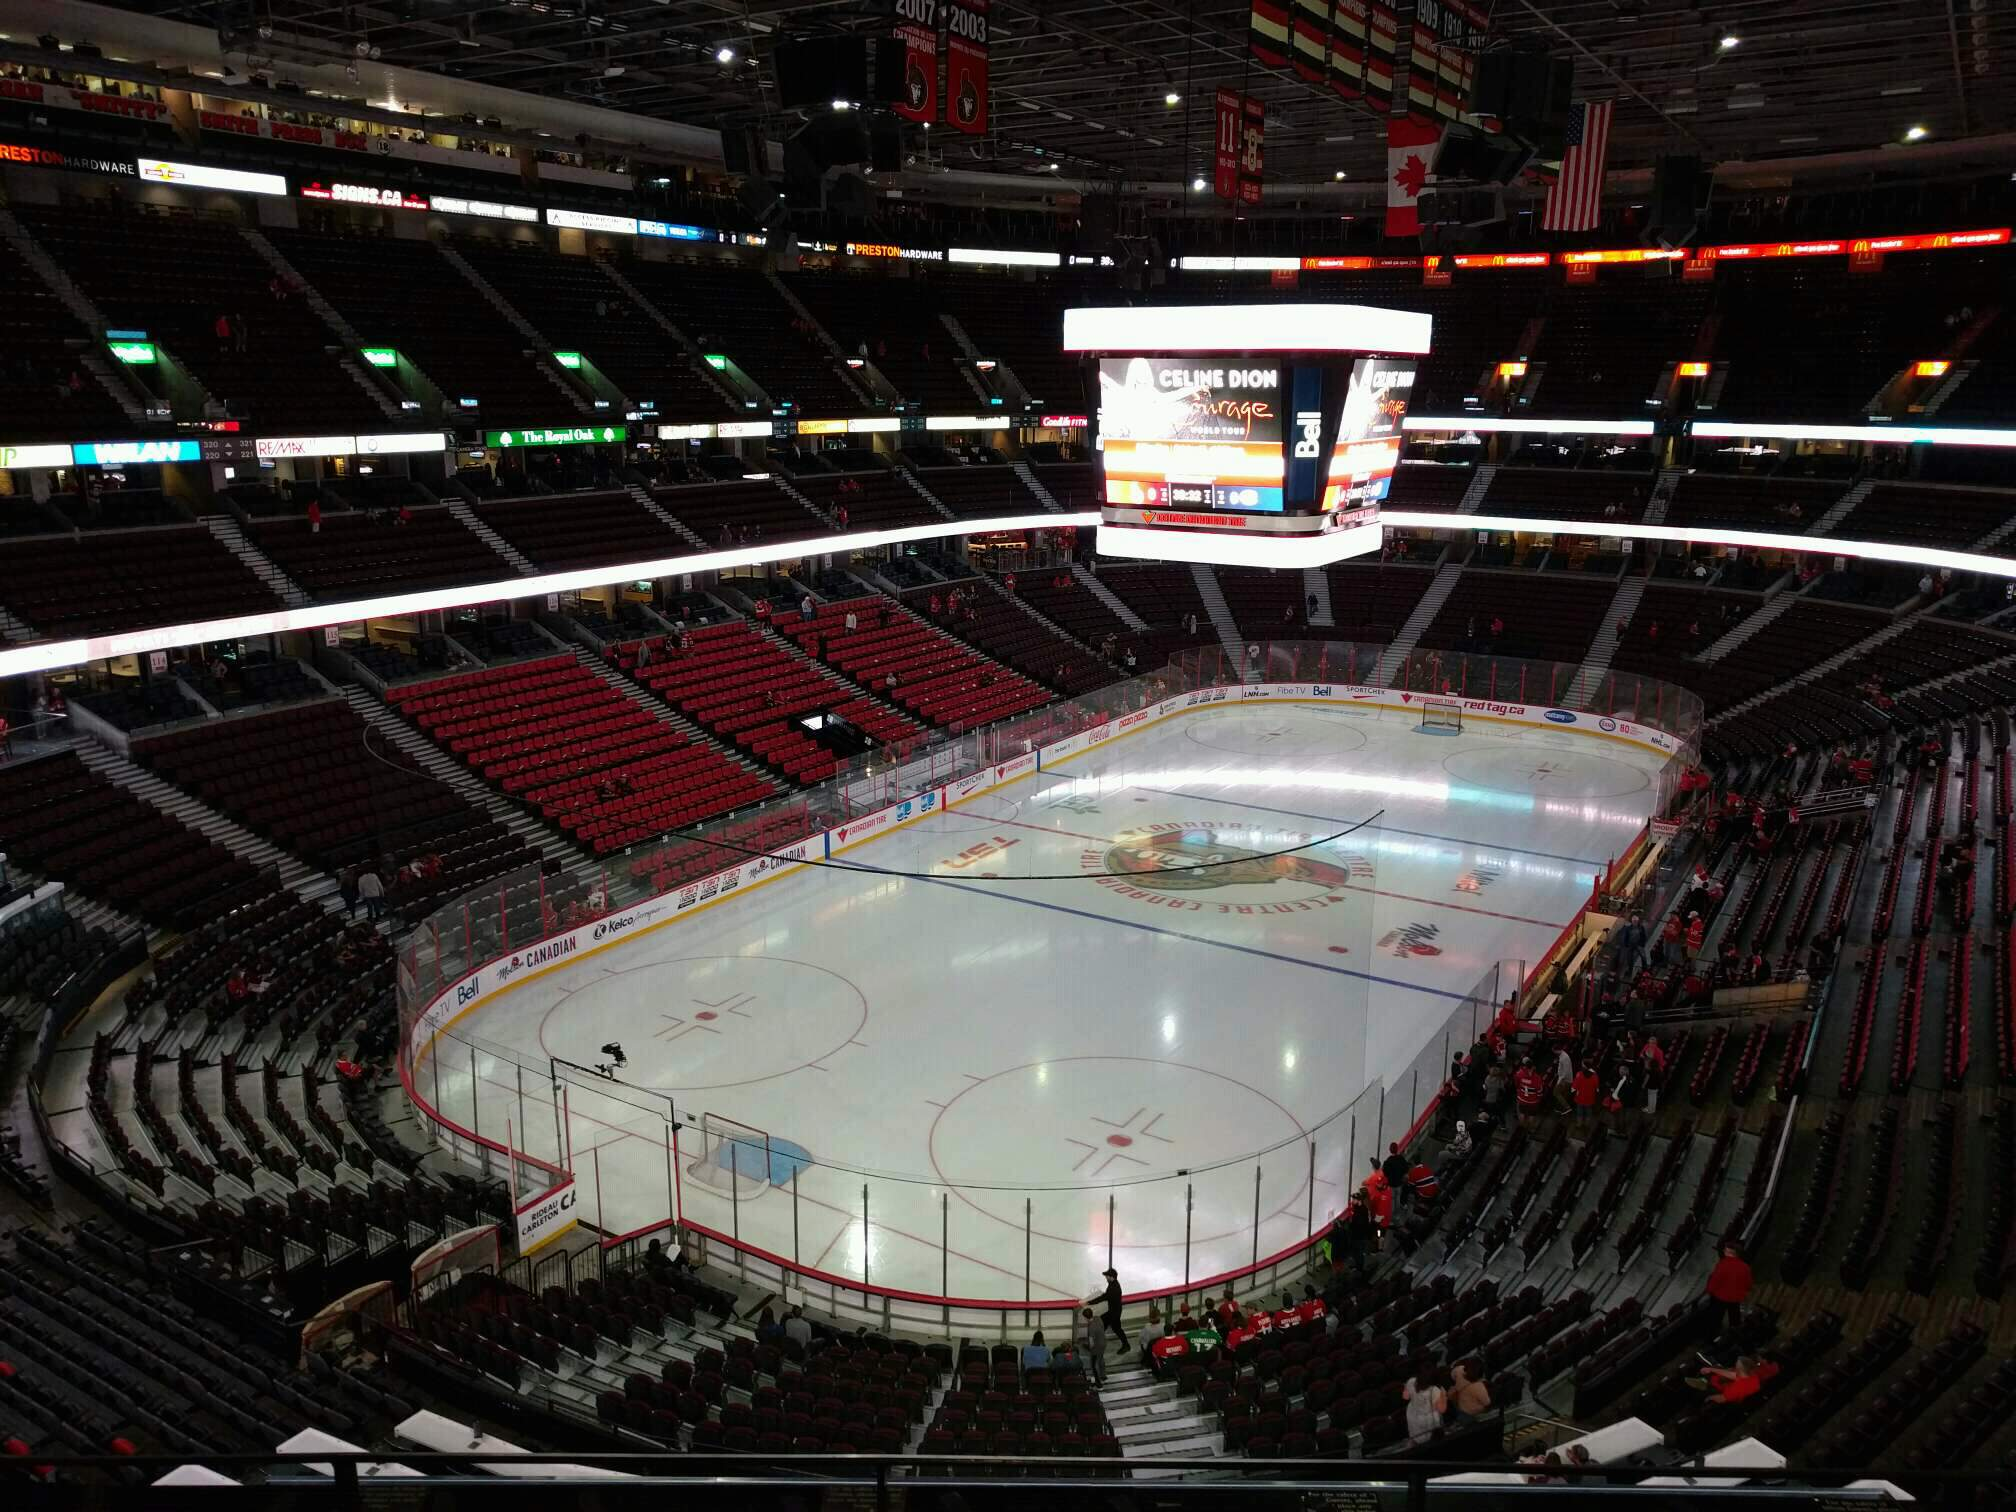 Canadian Tire Centre Section 313 Row d Seat 7